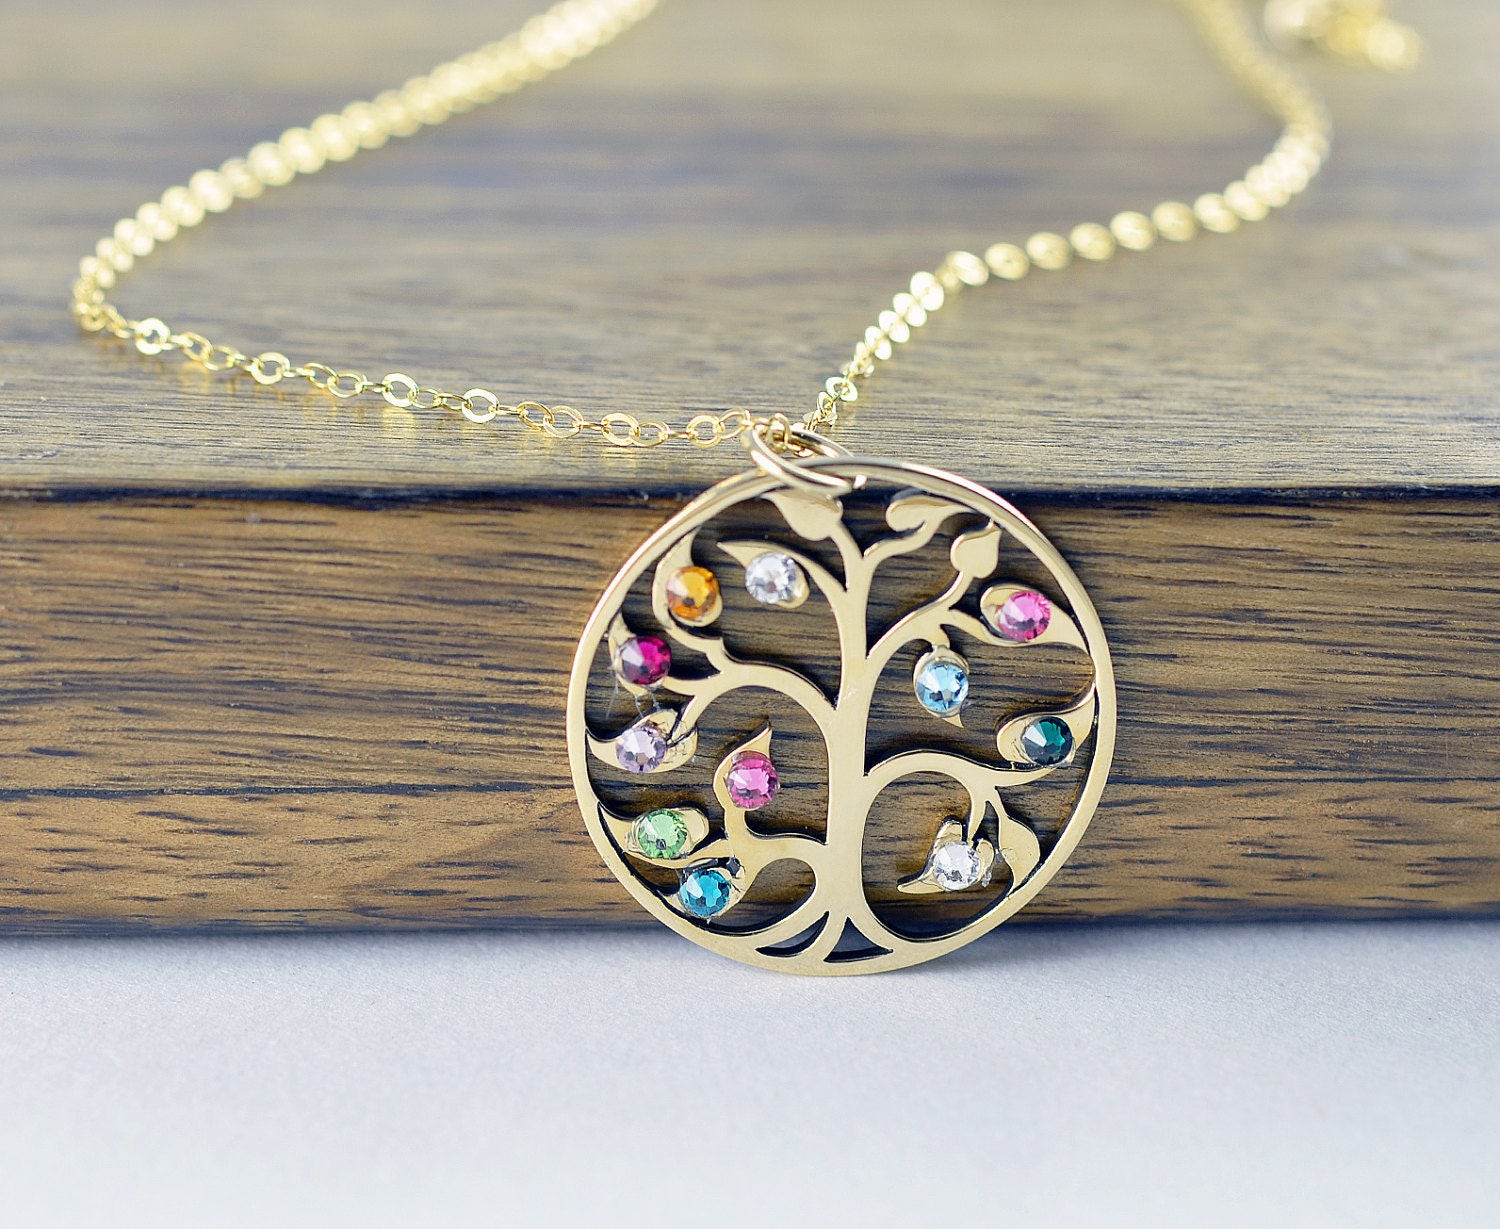 Grandmother Jewelry Personalized Grandmother Necklace Mother Necklace Tree of Life Mother/'s Day Gift for Grandma Family Tree Necklace